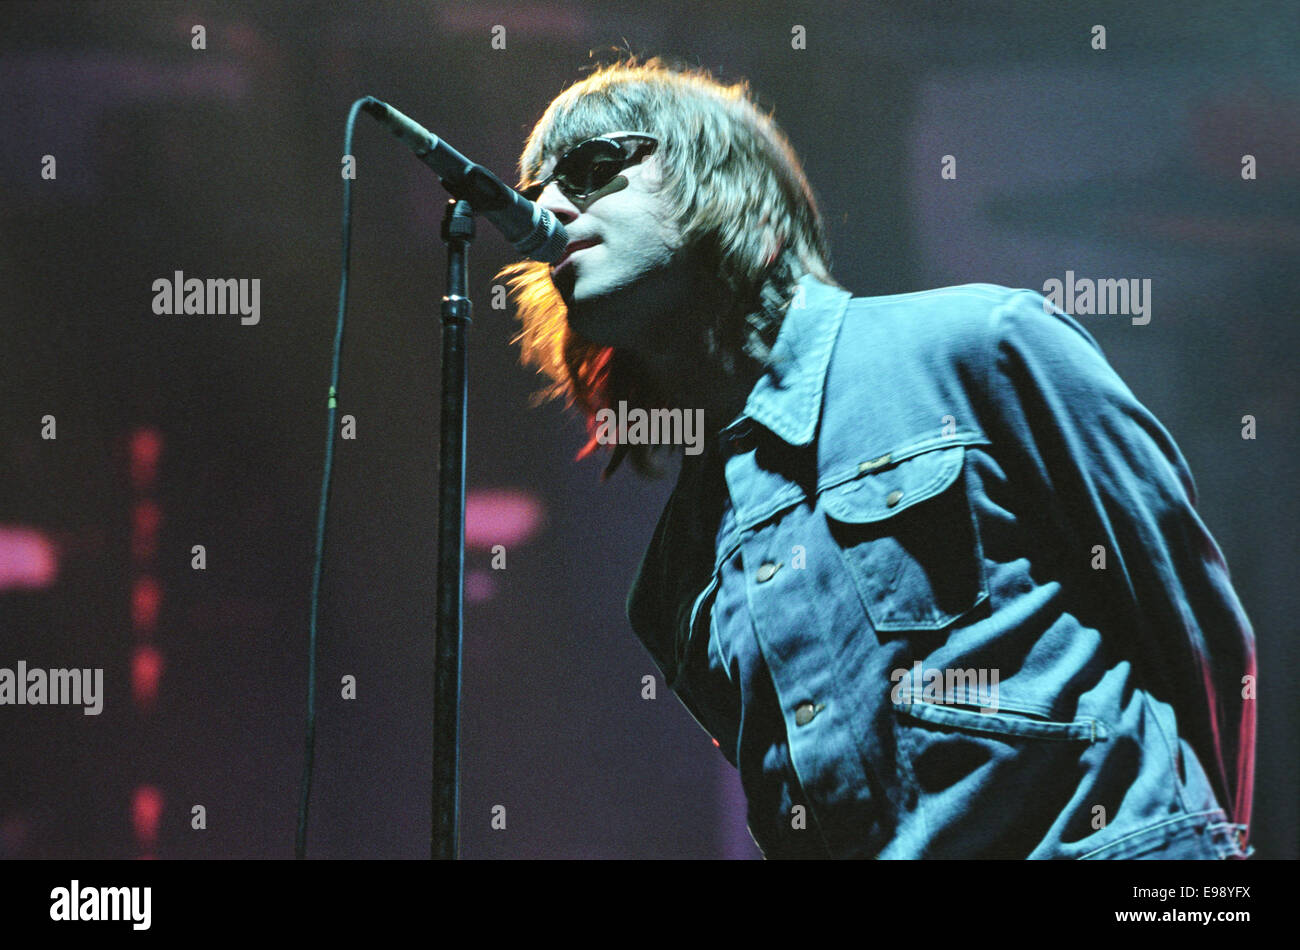 Liam Gallagher of Oasis on stage in concert at 'Rock On The Green', in Glasgow, Scotland, in August 2000. - Stock Image